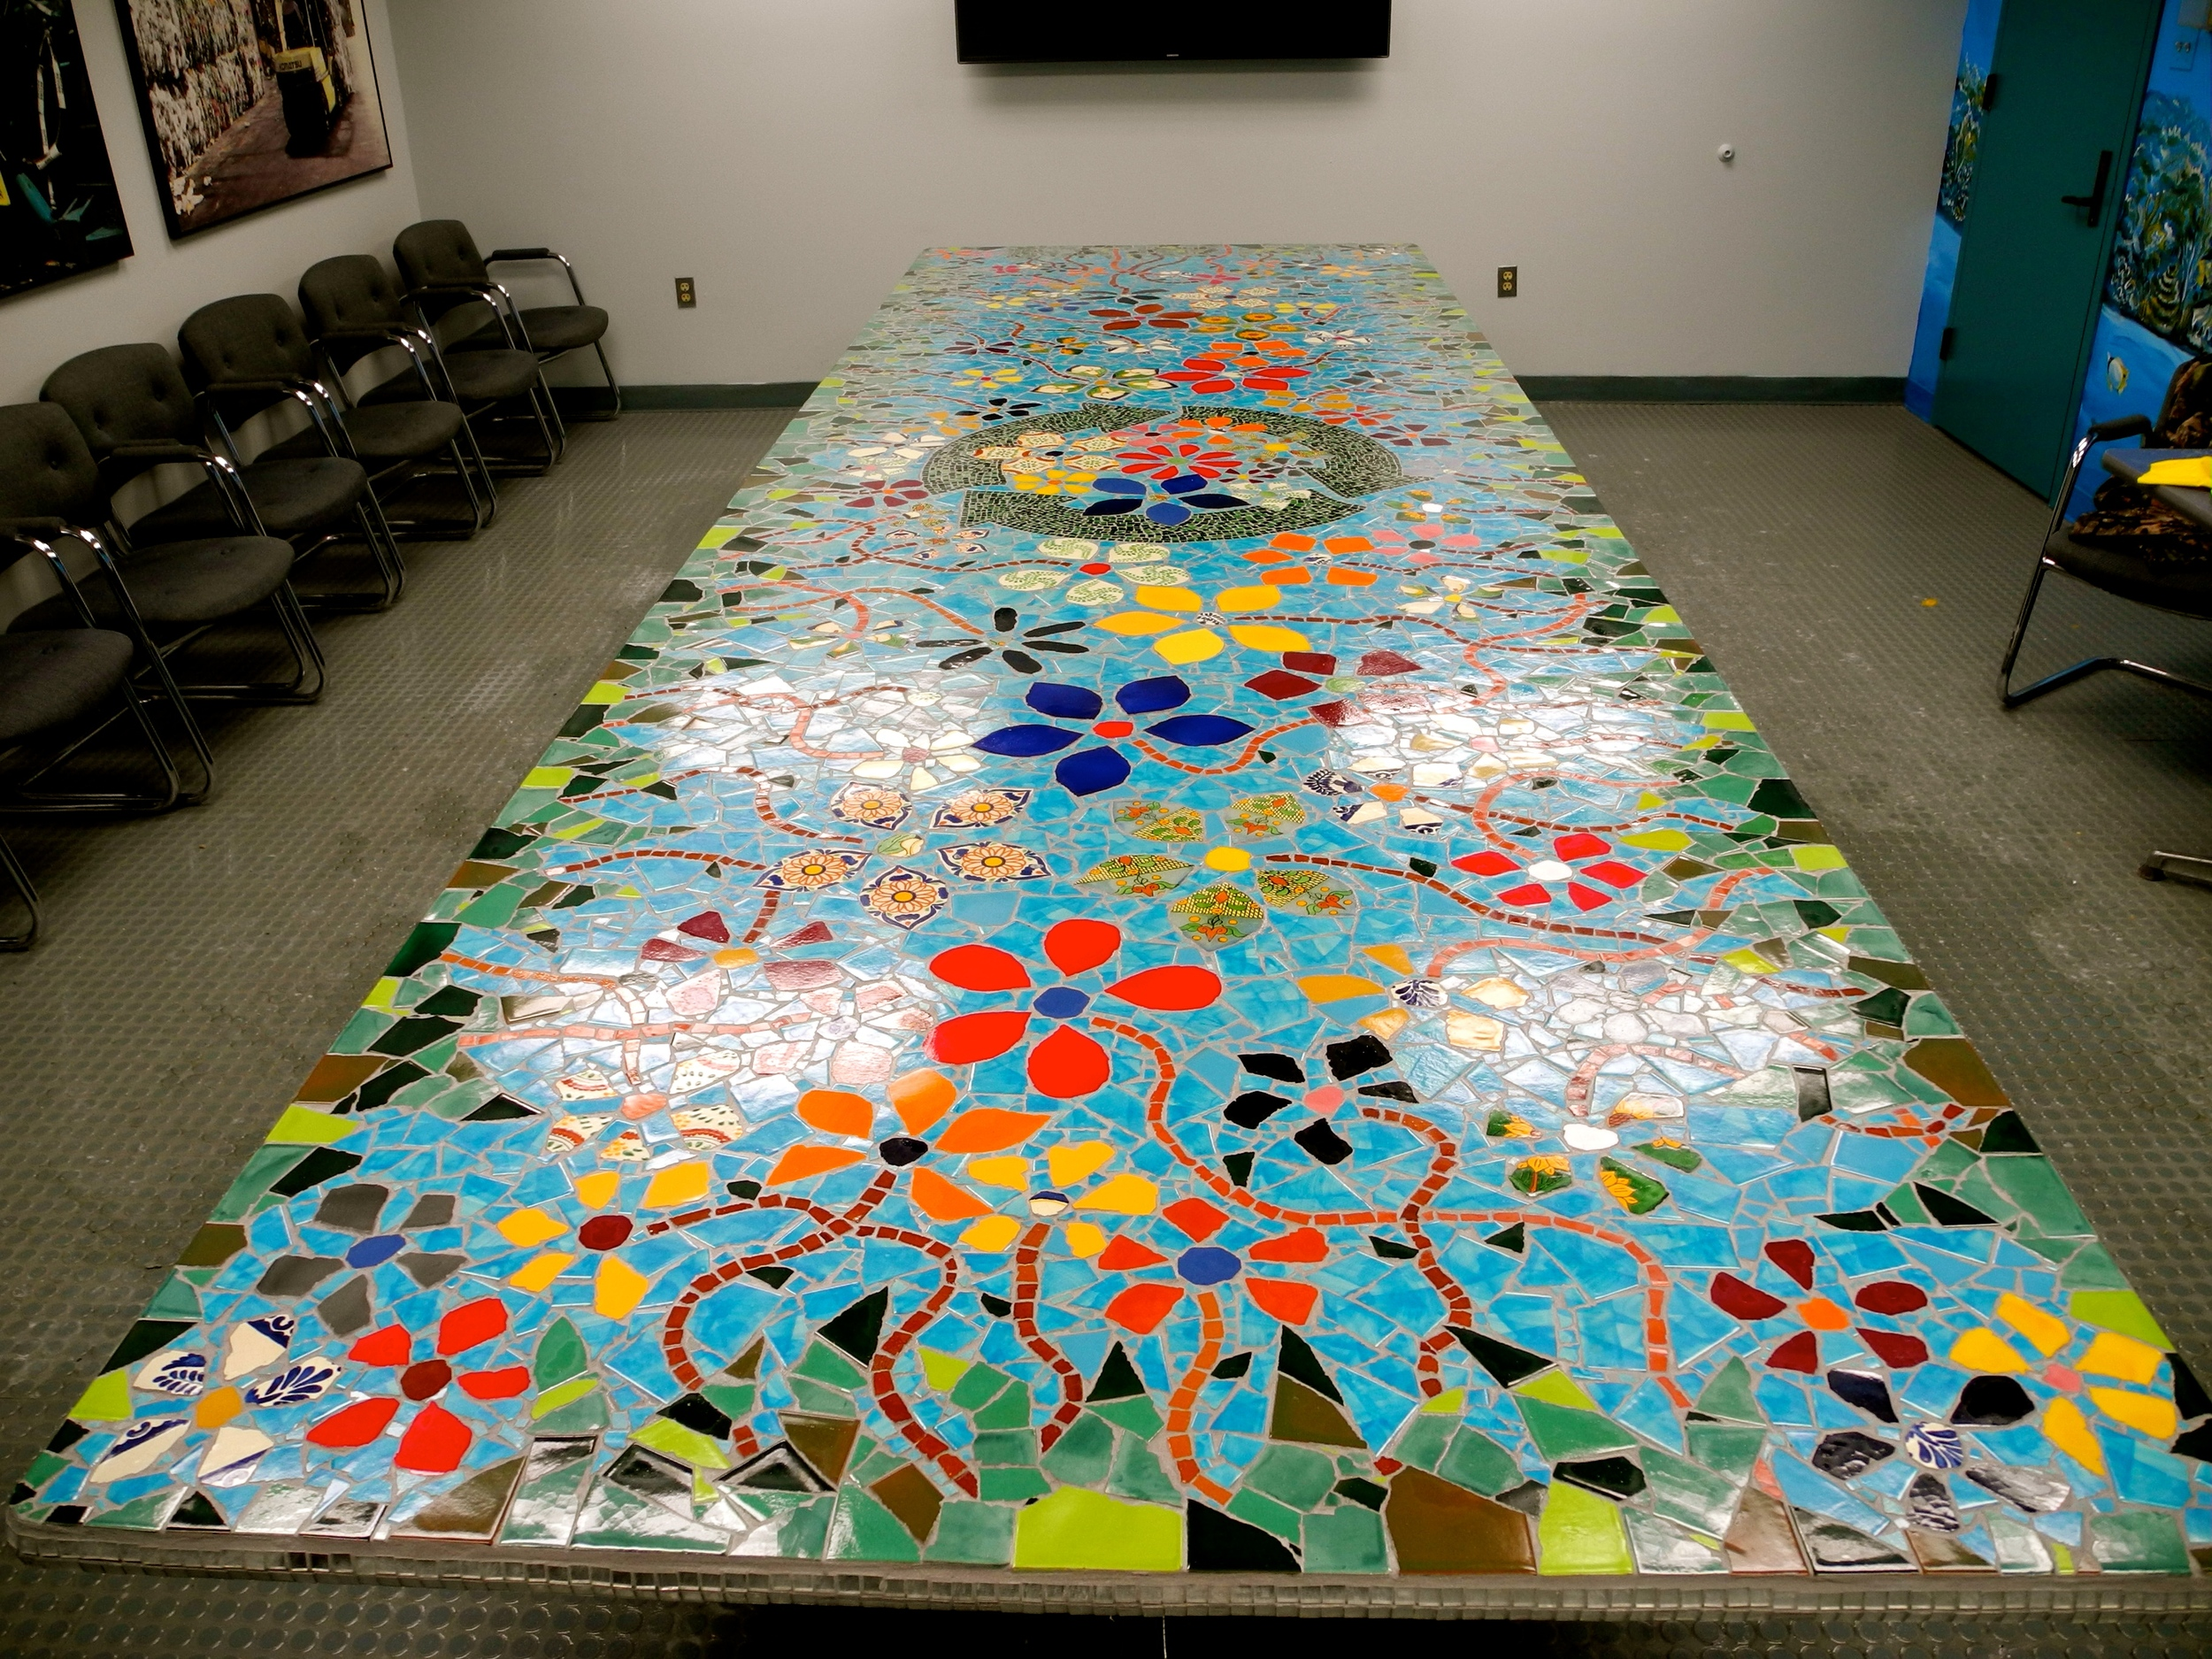 Mosaic conference table up-cycle comission work in progress. Grouting the edges. Will soon be done! 16' x 5'. 3/29/14.